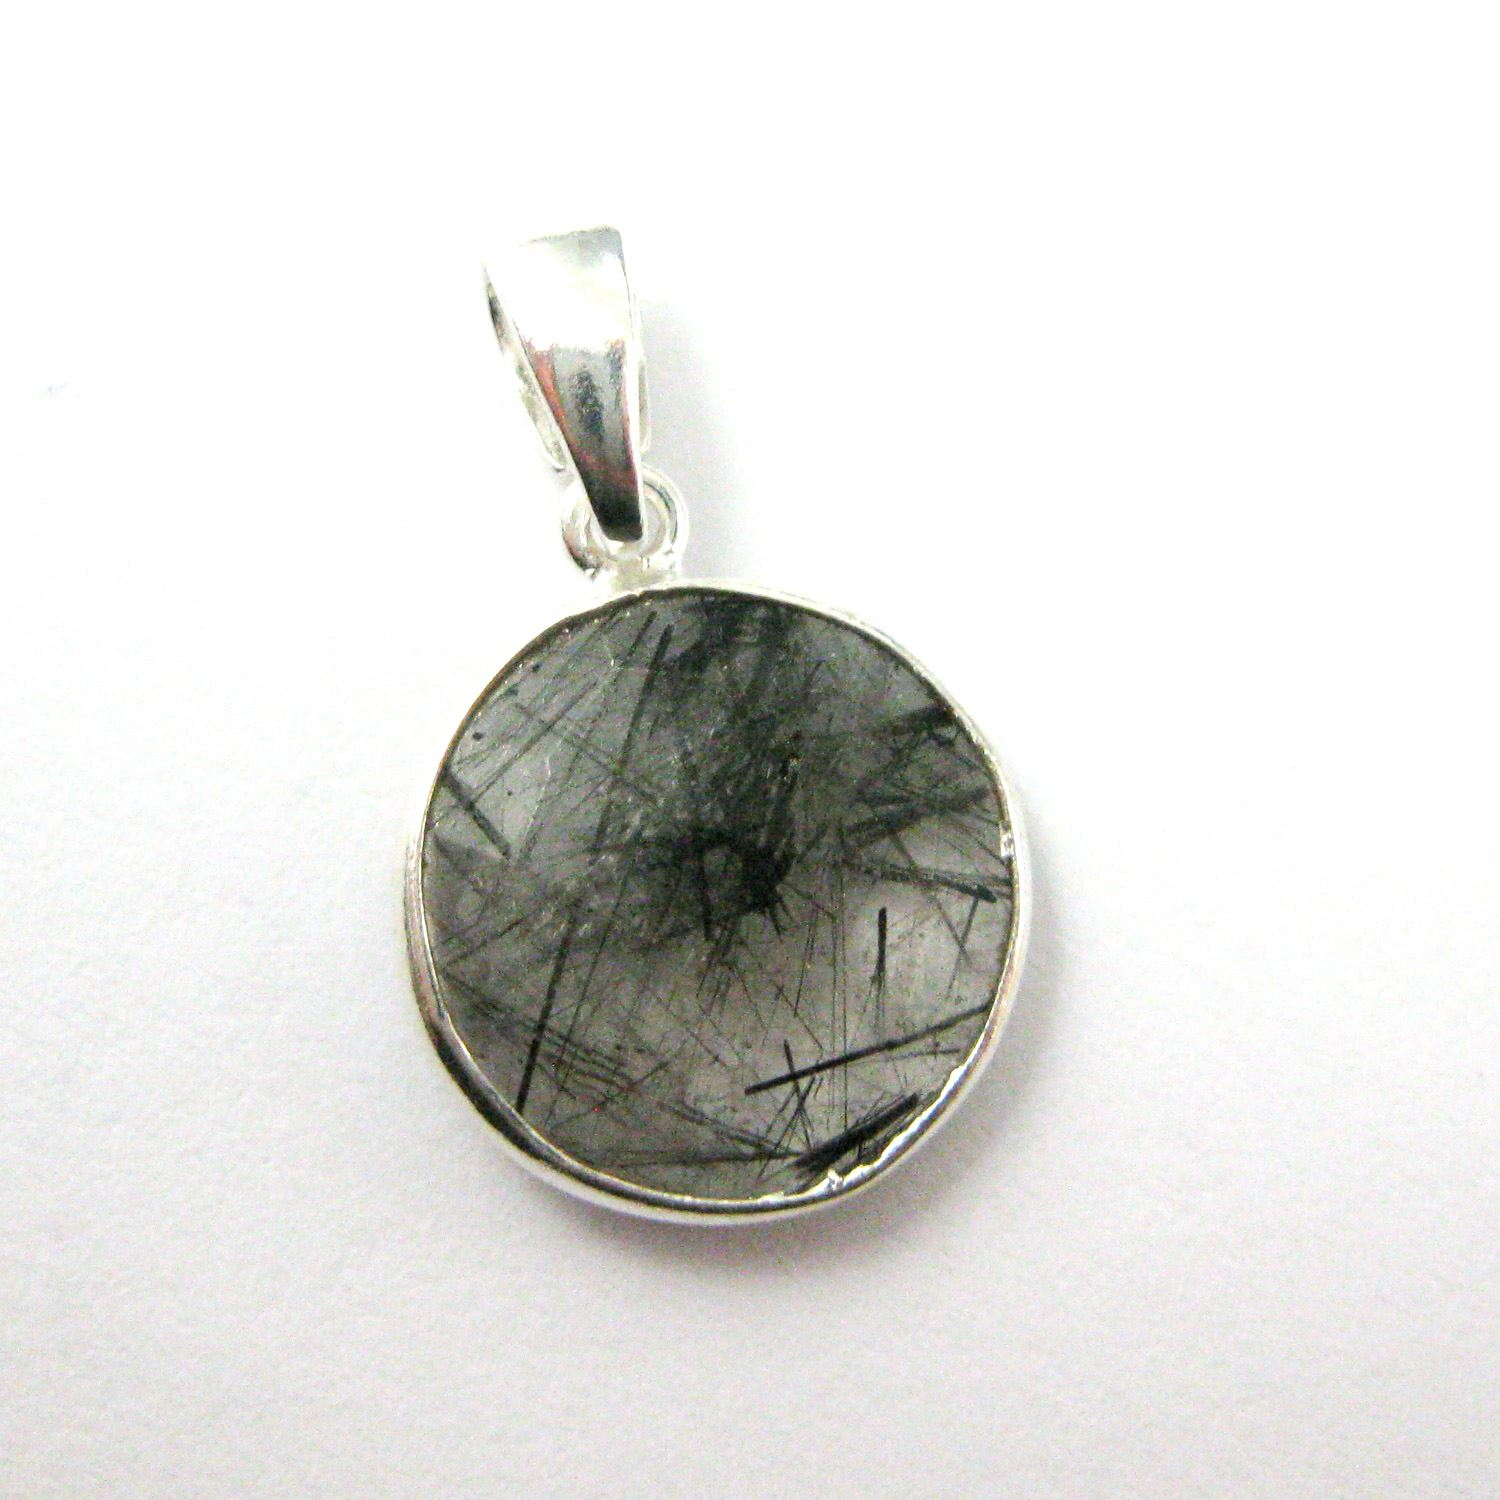 Bezel Gemstone Pendant with Bail - Sterling Silver Round Gem Pendant - Ready for Necklace - 24mm- Black Rutilated Quartz